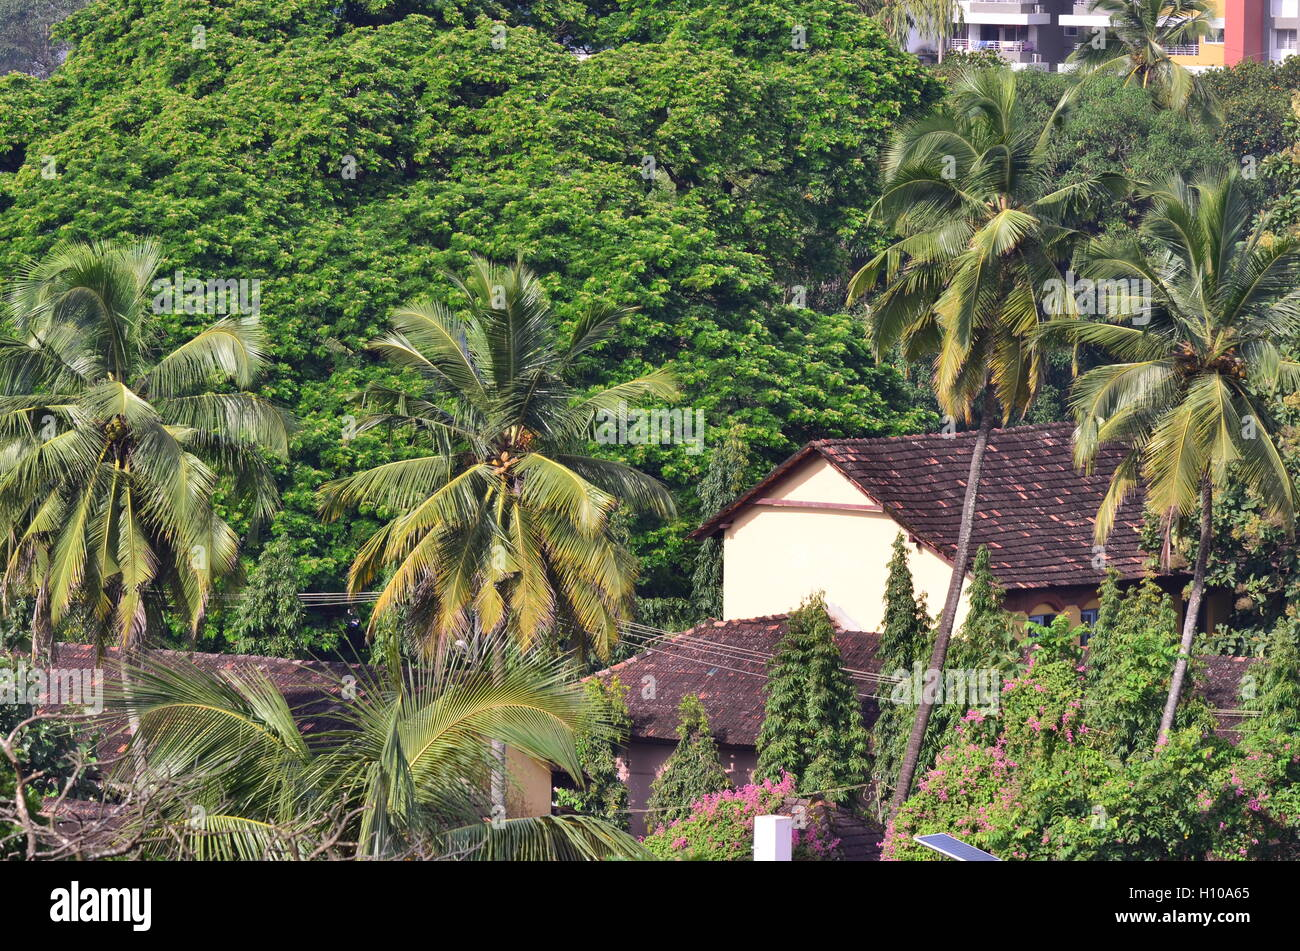 Stock Photo - Traditional tile roof house surrounded by greenery of trees and coconut palms at Mangalore Karnataka India & Traditional tile roof house surrounded by greenery of trees and ... memphite.com